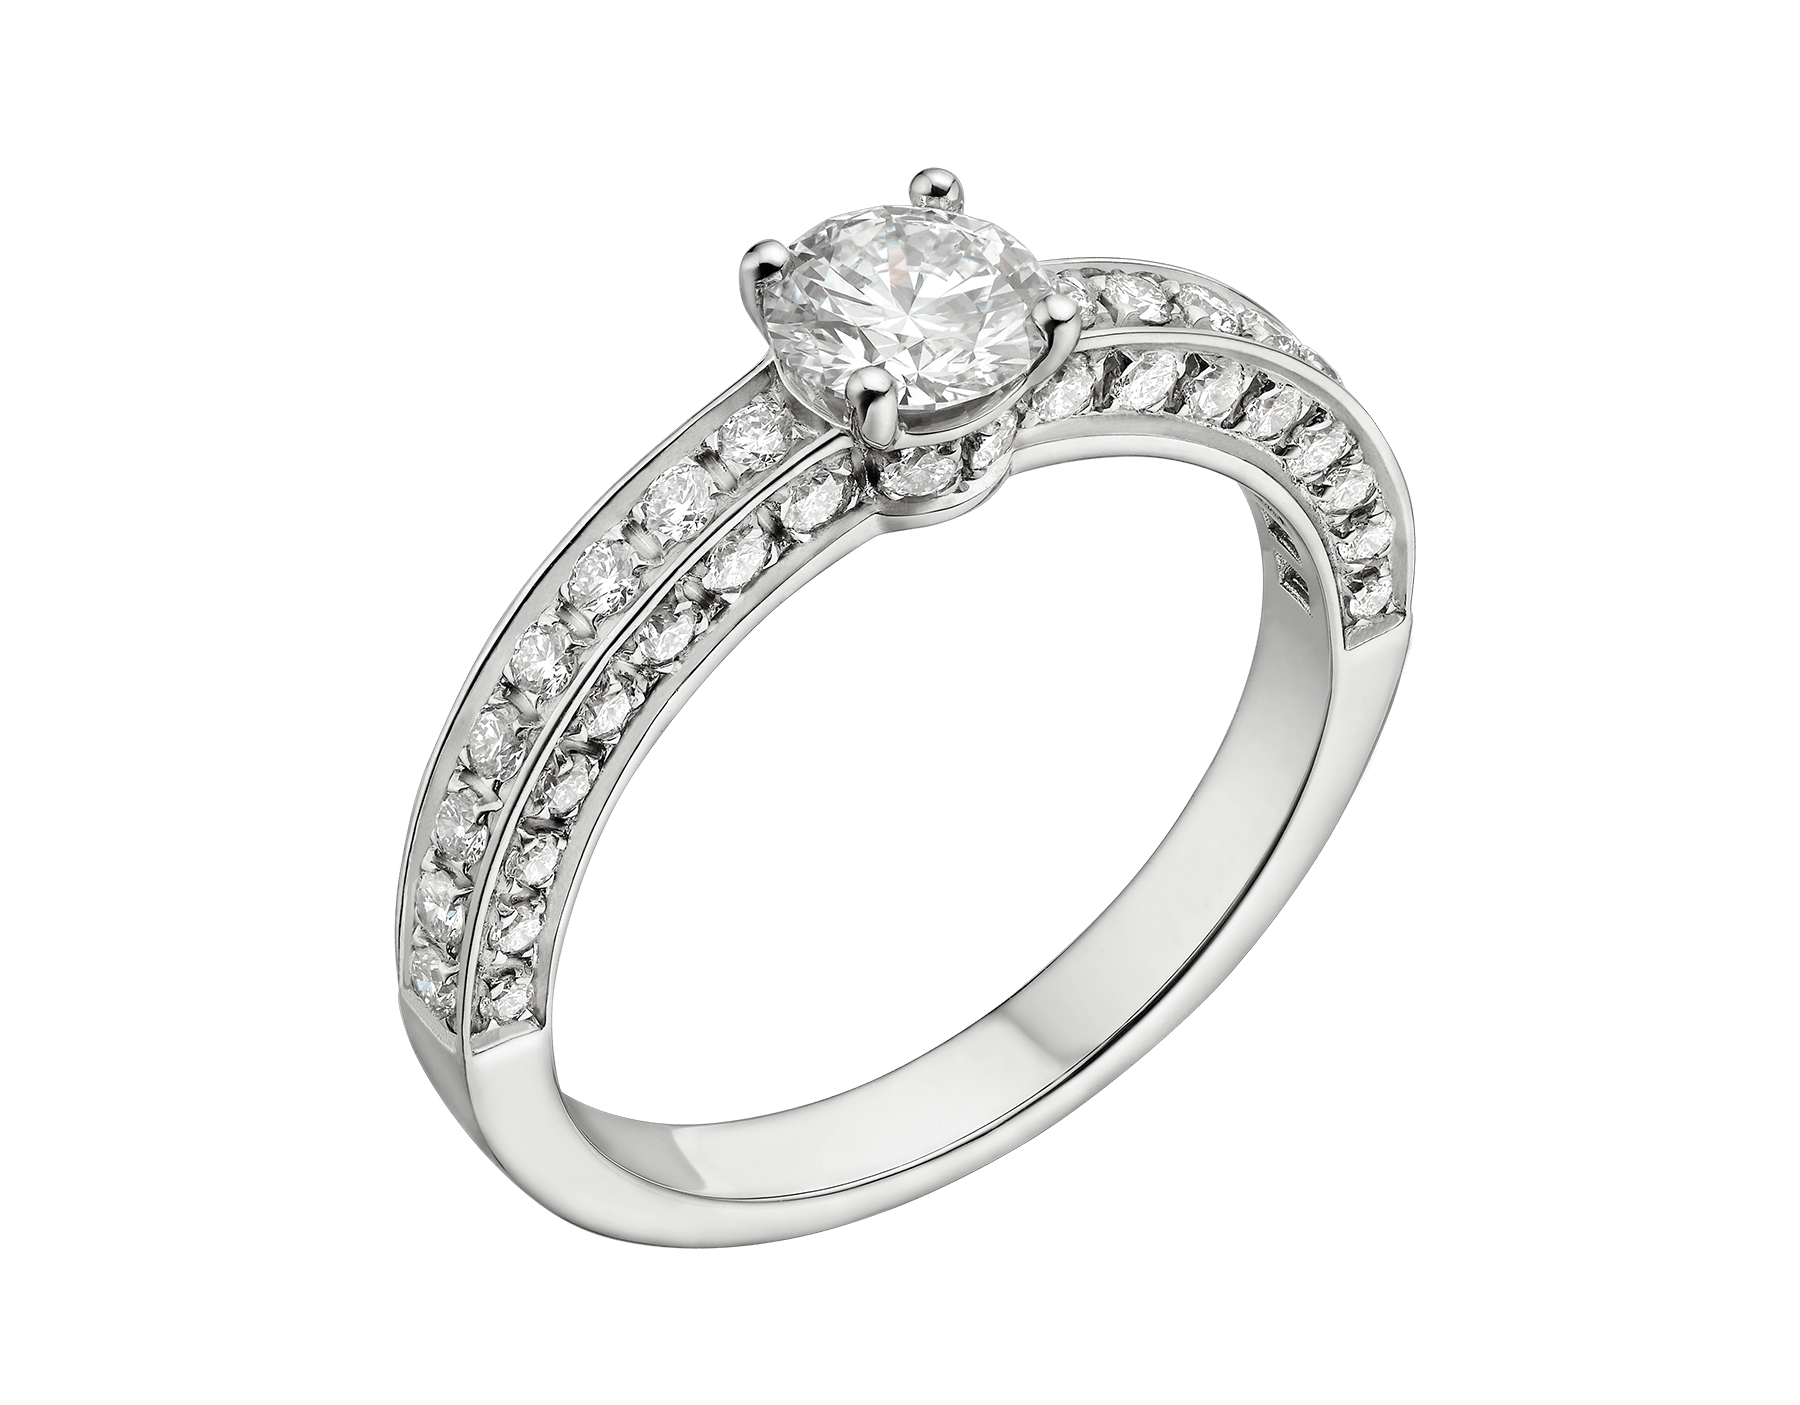 Dedicata a Venezia: 1503 solitaire ring in platinum with a round brilliant-cut diamond and pavé diamonds. Available from 0.30 ct. Named after the year in which the first engagement ring was offered in Venice. 343594 image 1